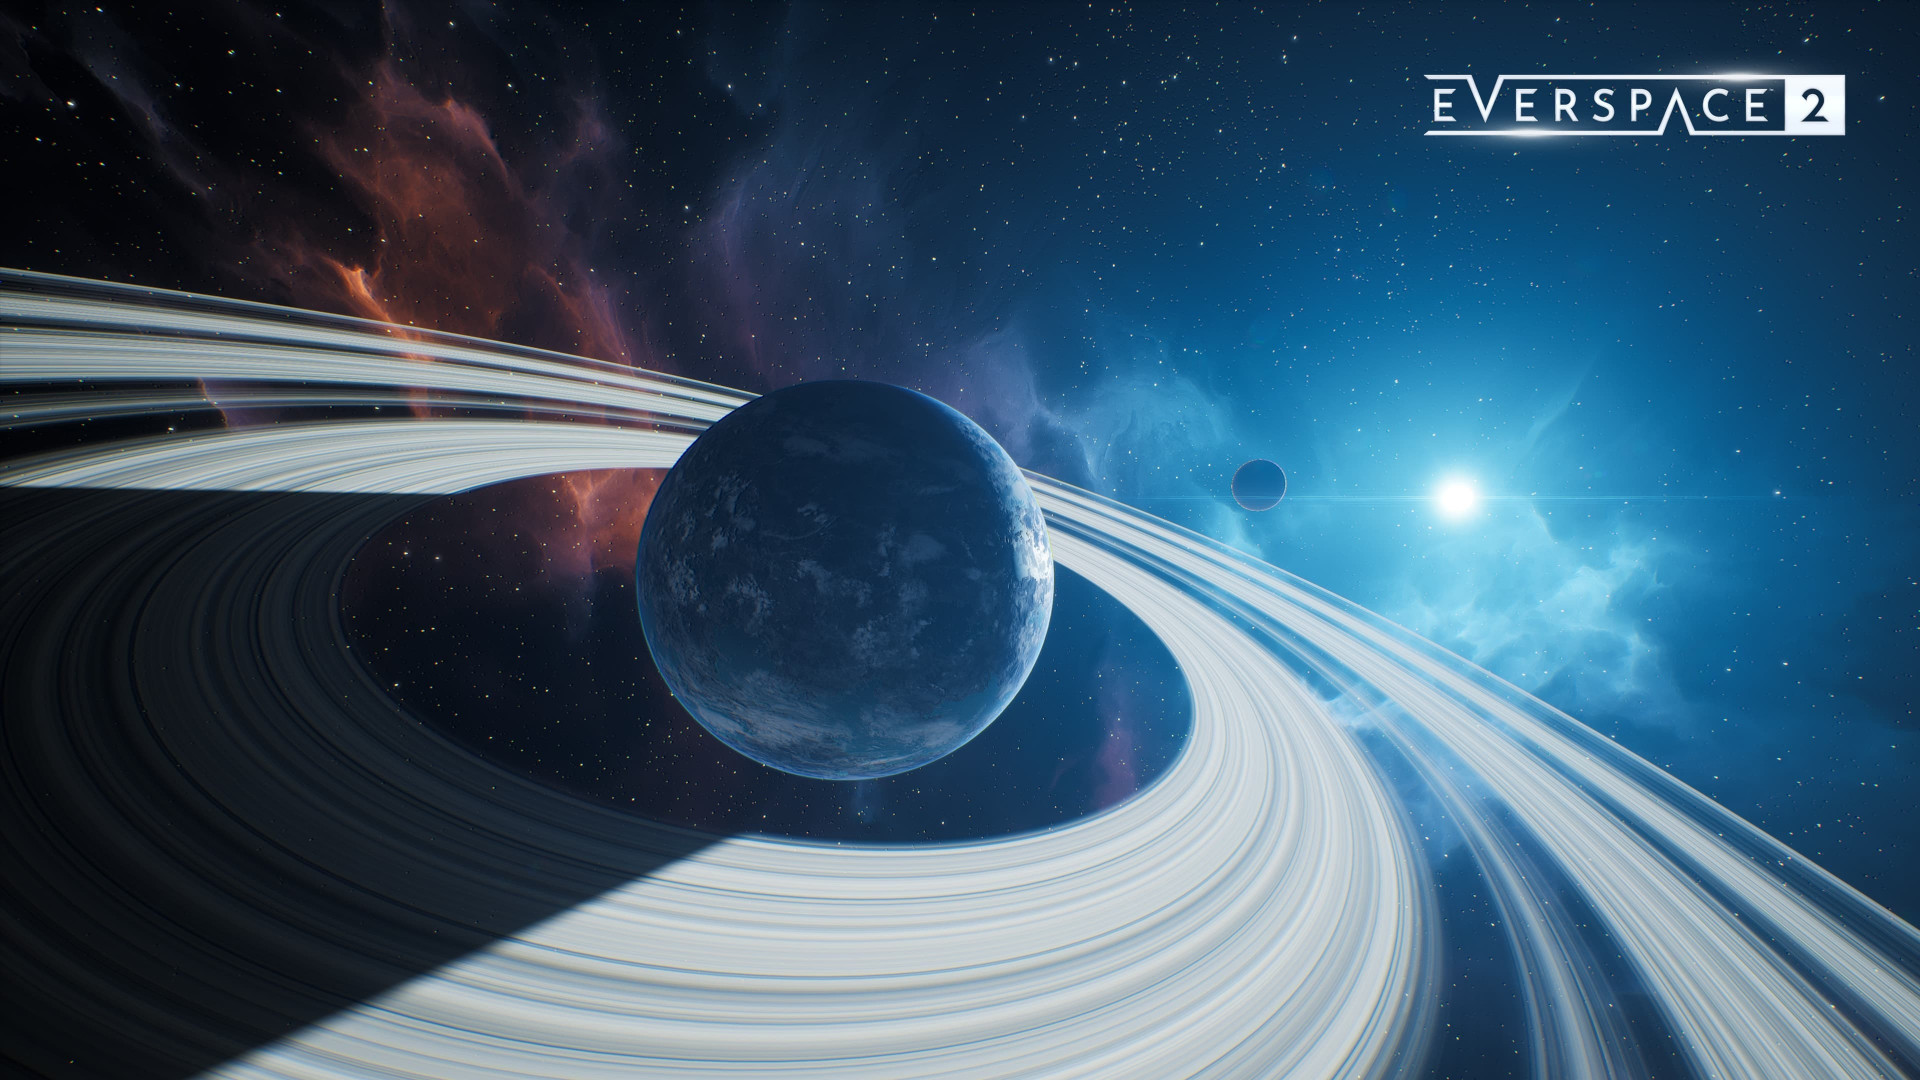 Everspace 2 wallpaper 1920x1080